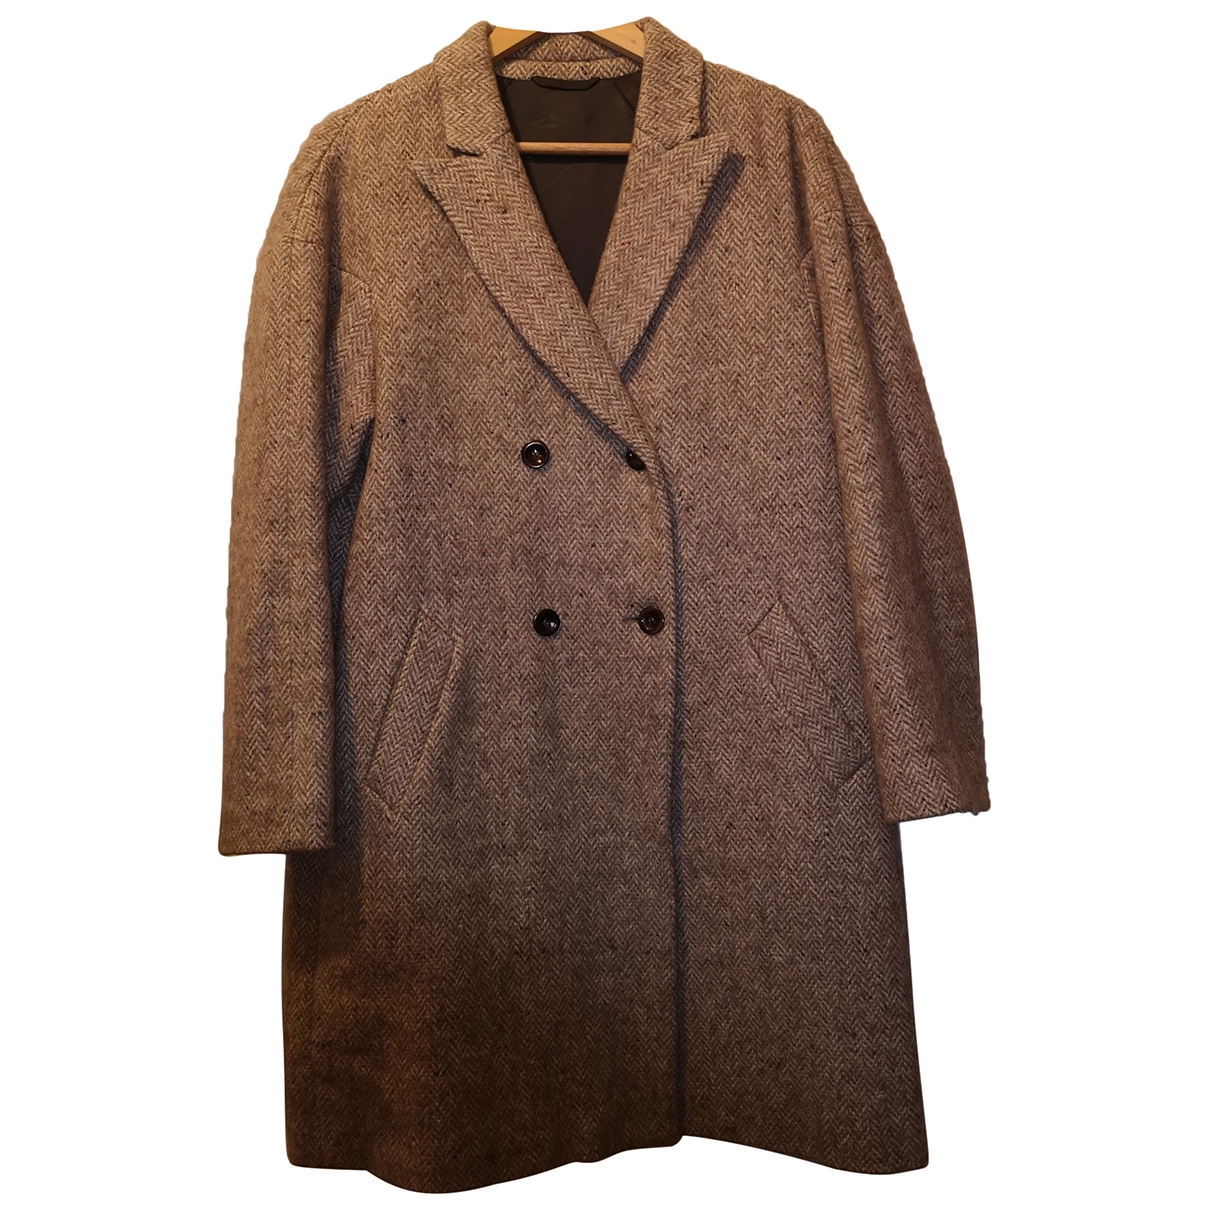 Filippa K \N Brown Tweed coat for Women L International